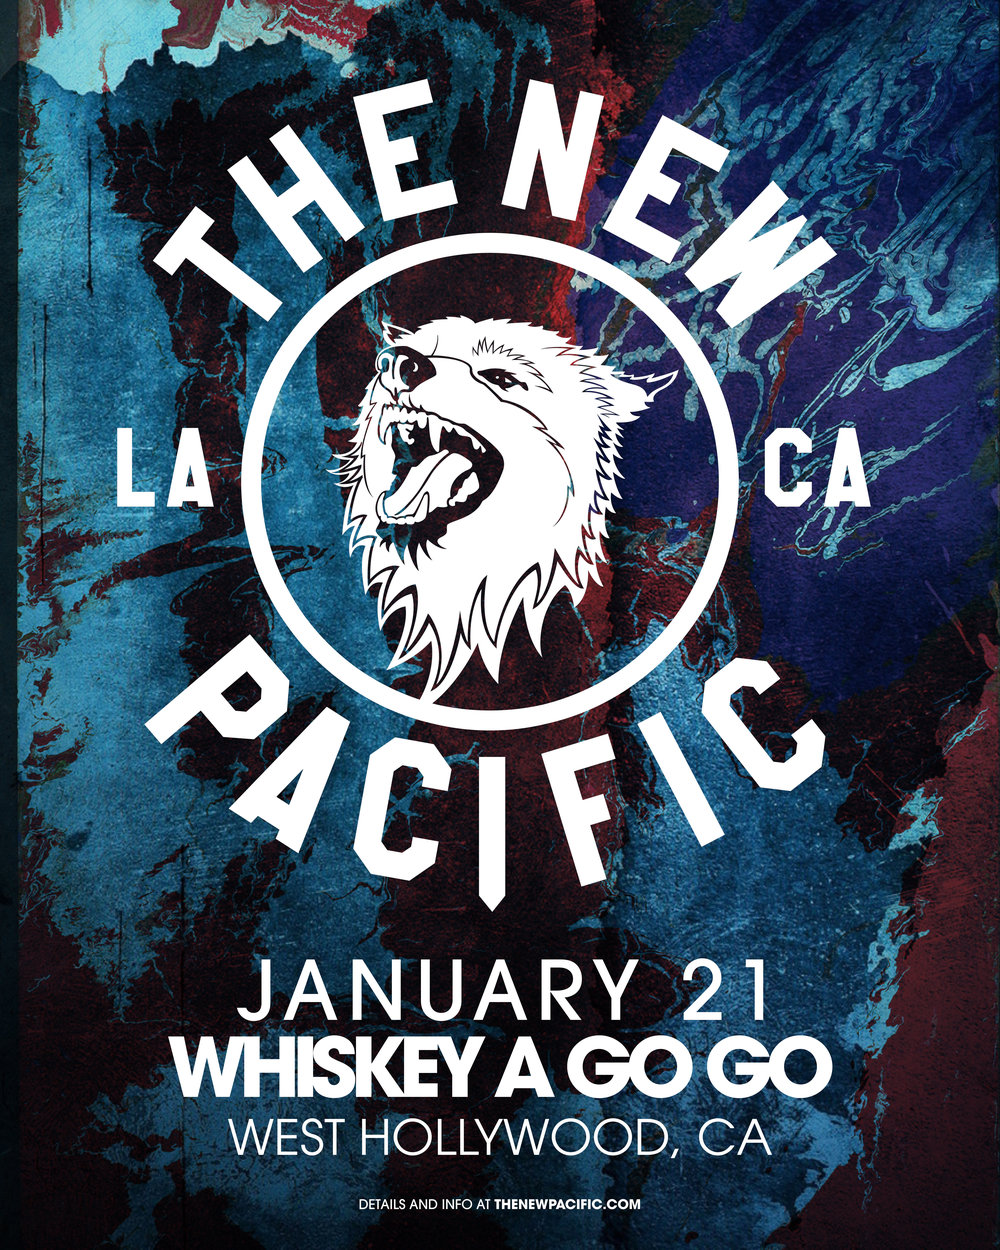 The New Pacific - The Whiskey A Go Go